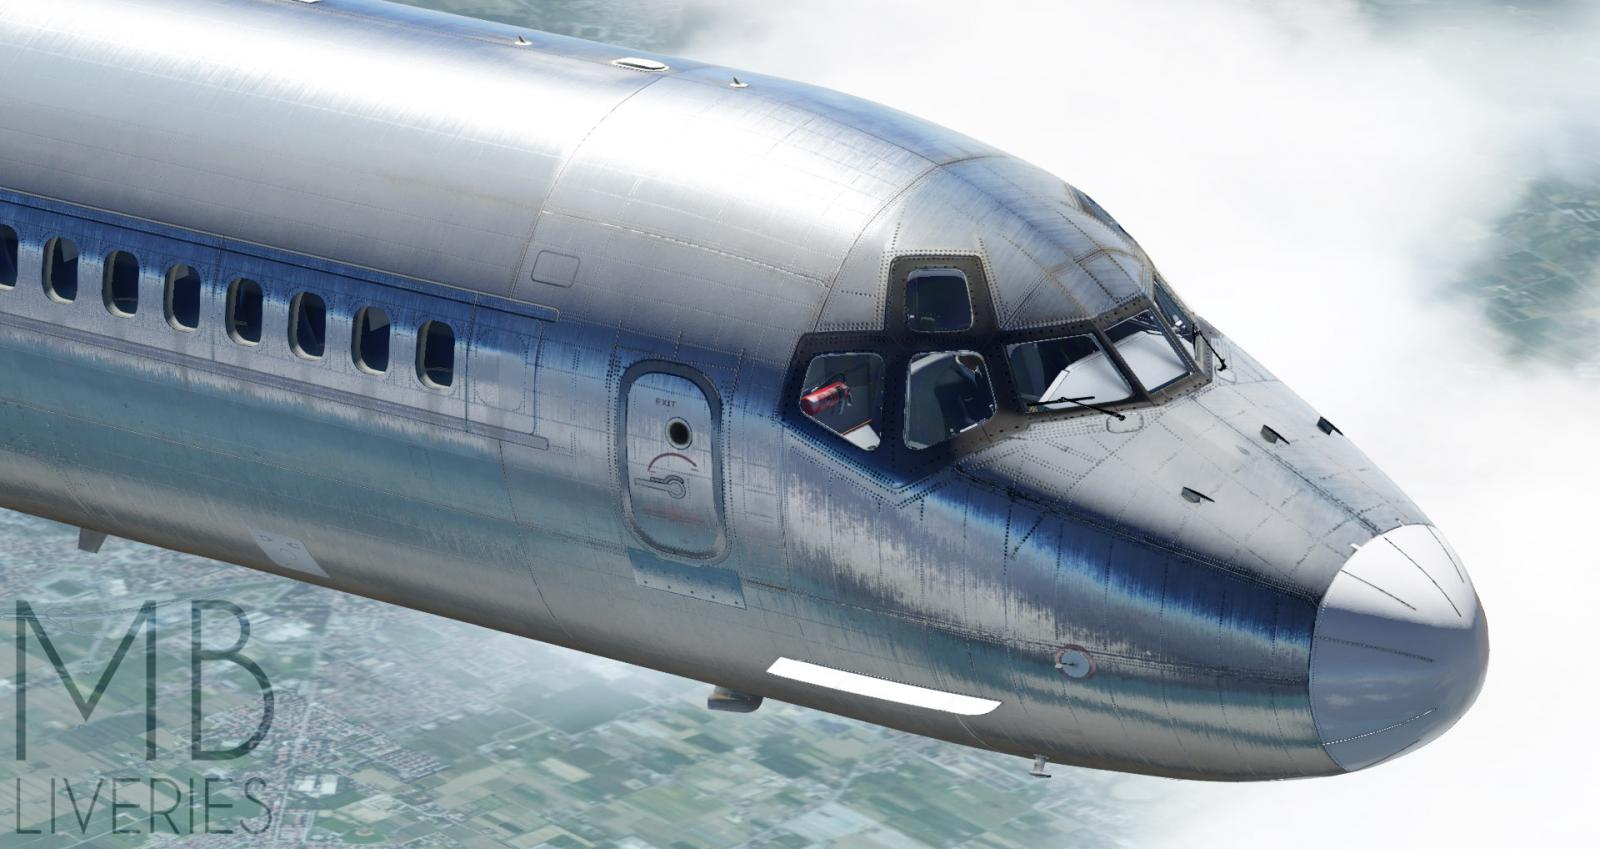 Rotate MD-80 Liveries - Page 7 - MD-80 by Rotate - X-Plane Org Forum